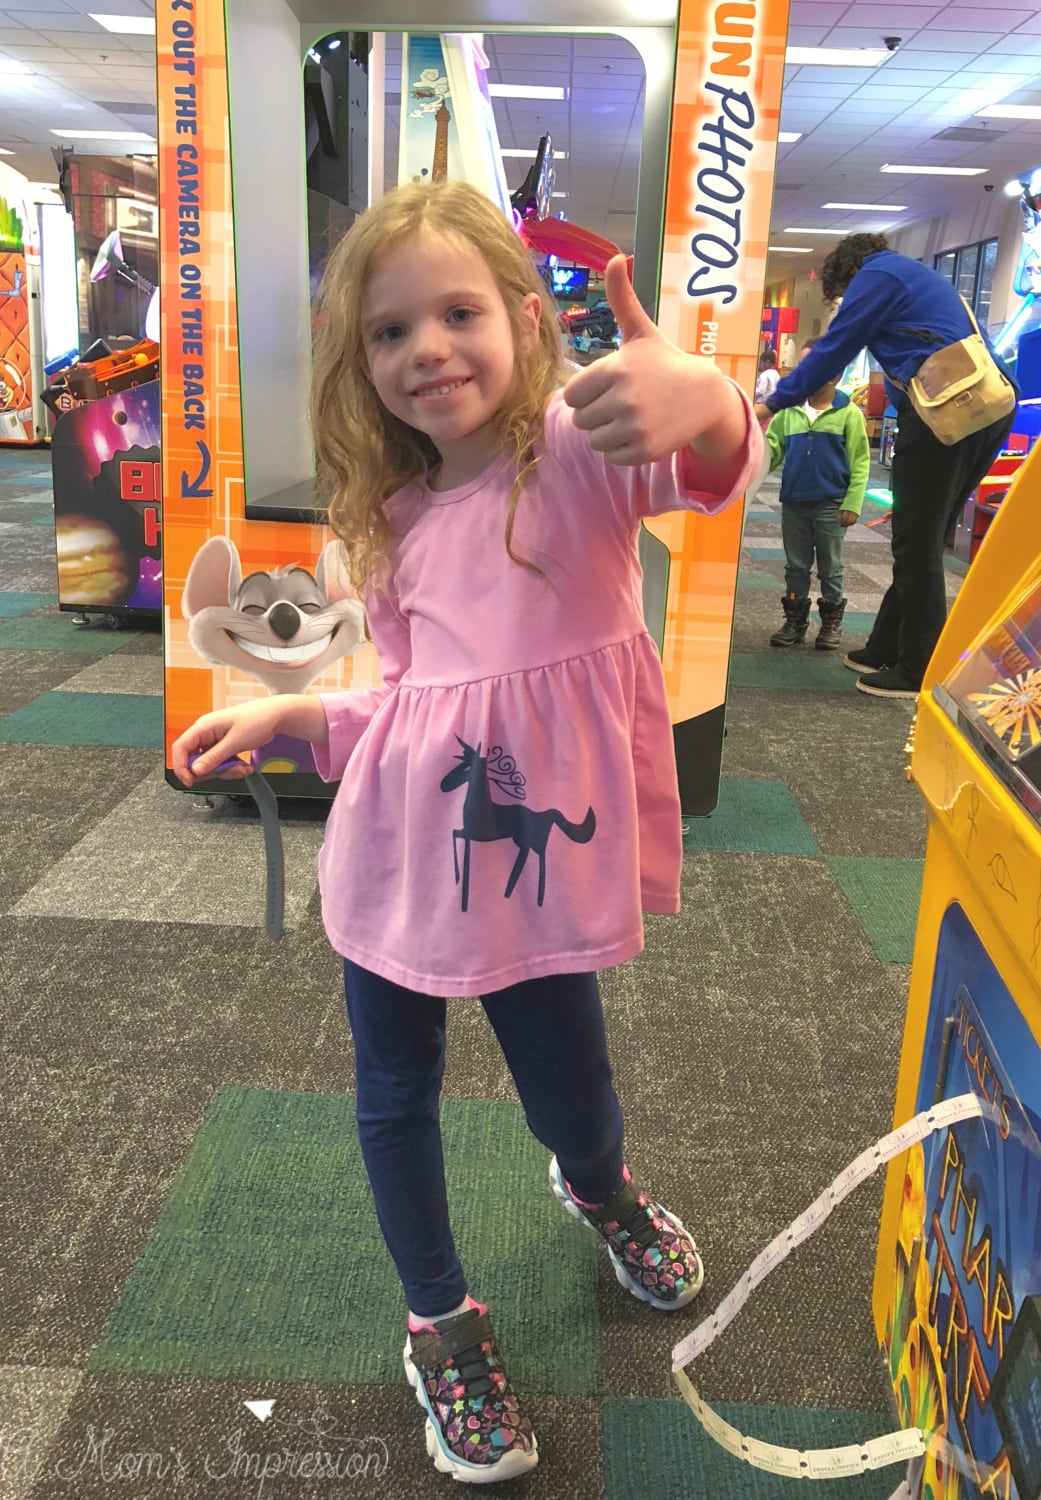 Winning Games at Chuck E. Cheeses